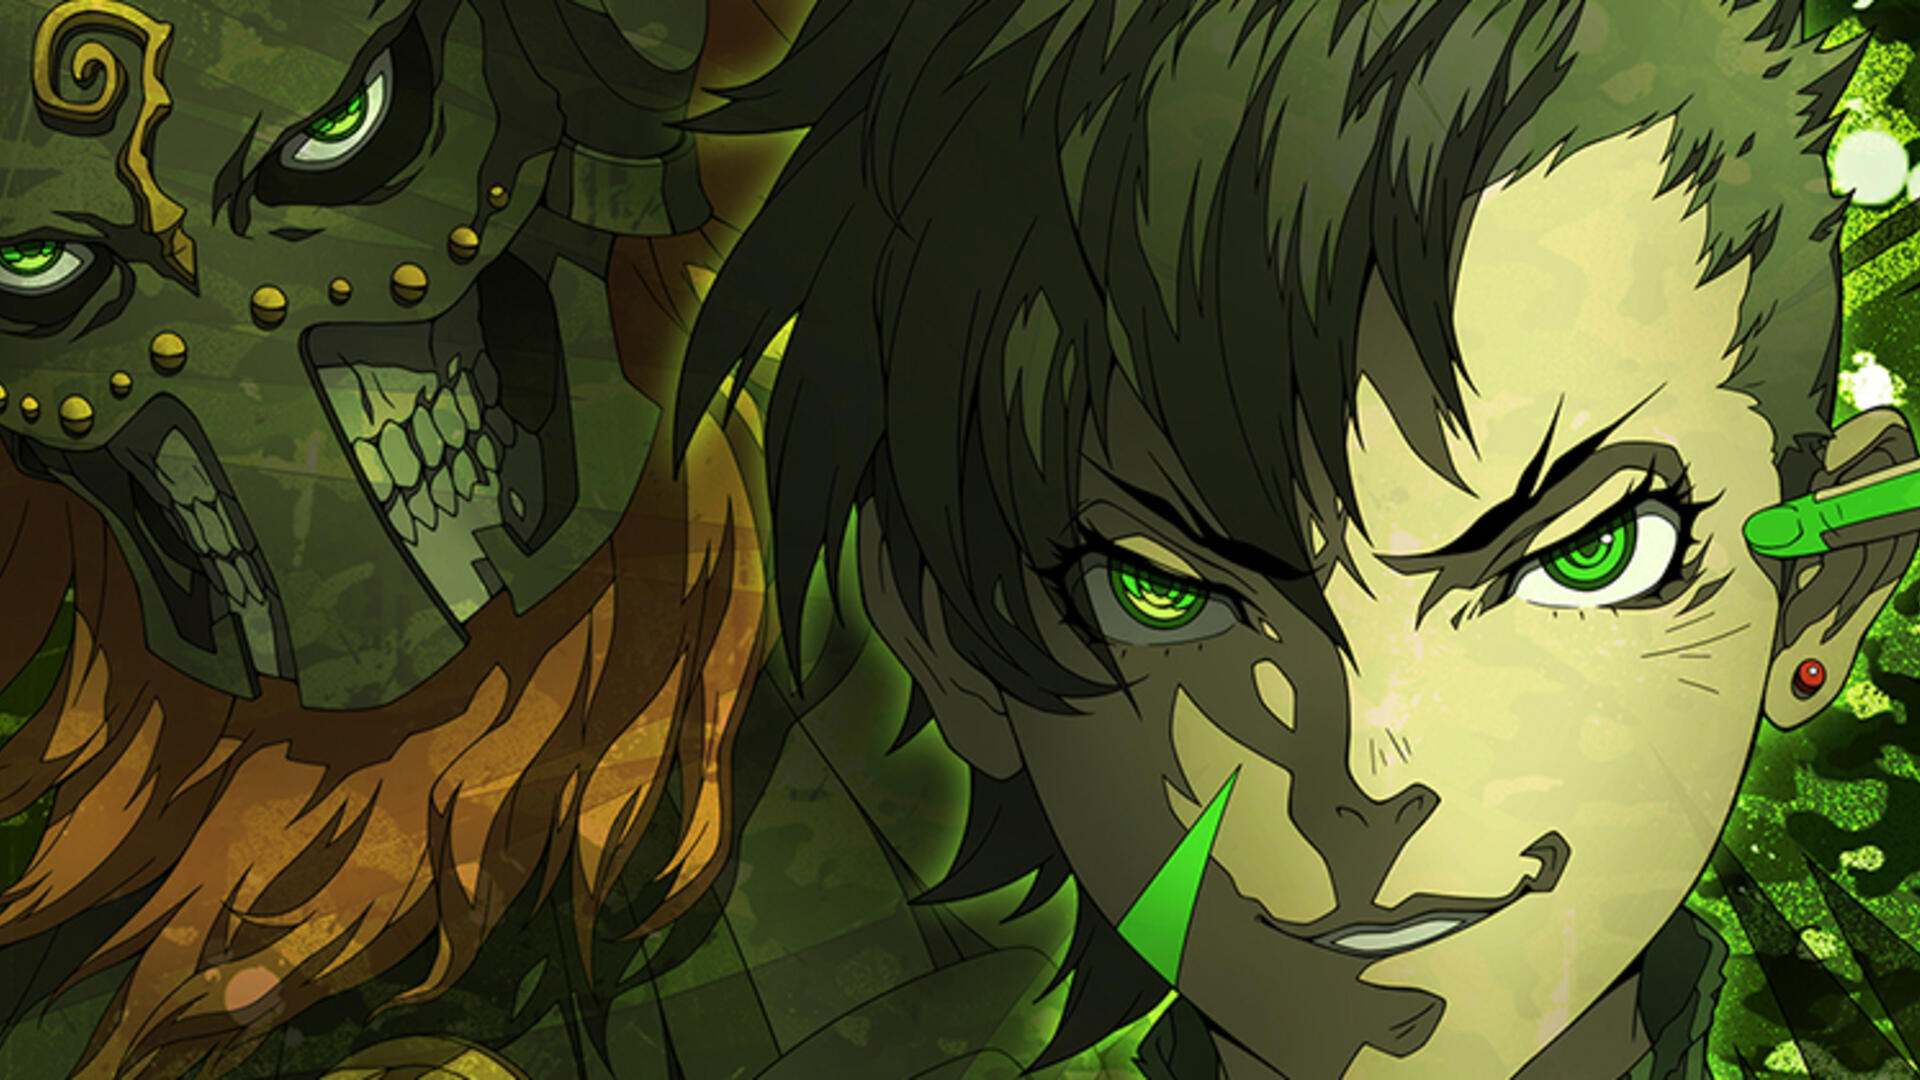 Persona 5 and SMT IV: Apocalypse Coming to Europe Via Deep Silver